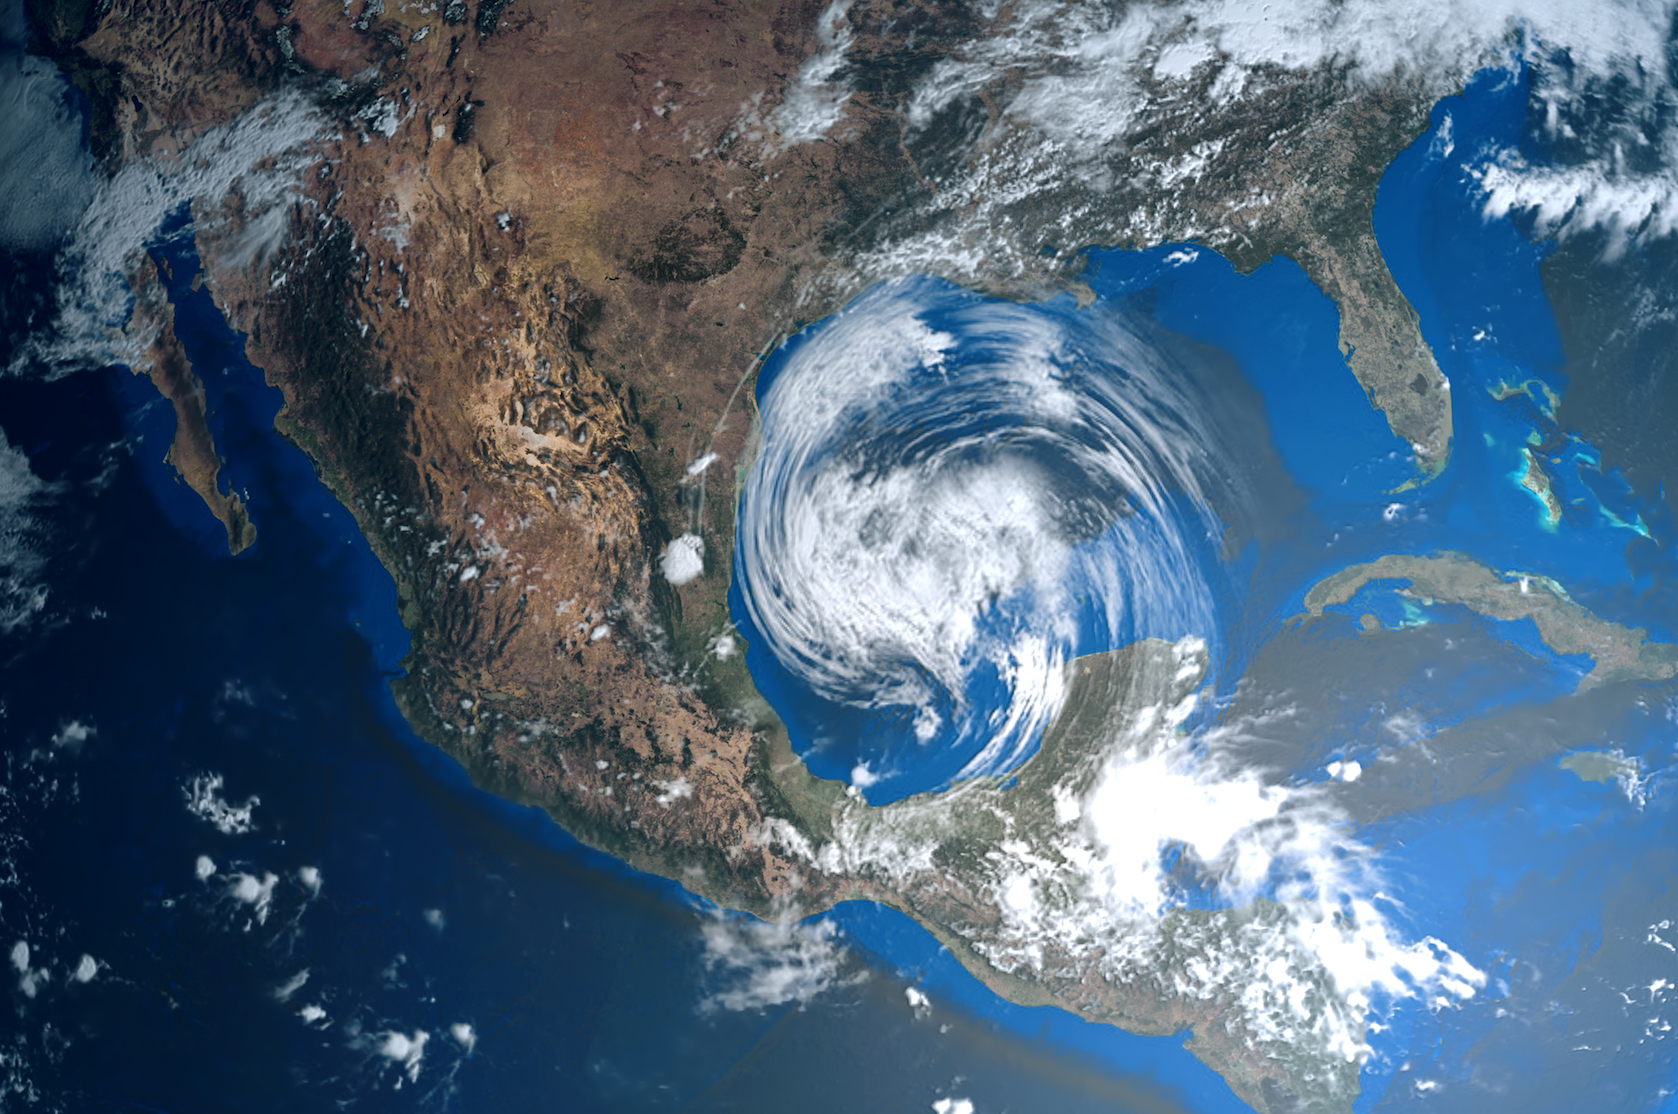 Researchers believe the stalling action shown by Hurricane Harvey may have been a result of the increase in global temperature, which is causing hurricanes to move more slowly.